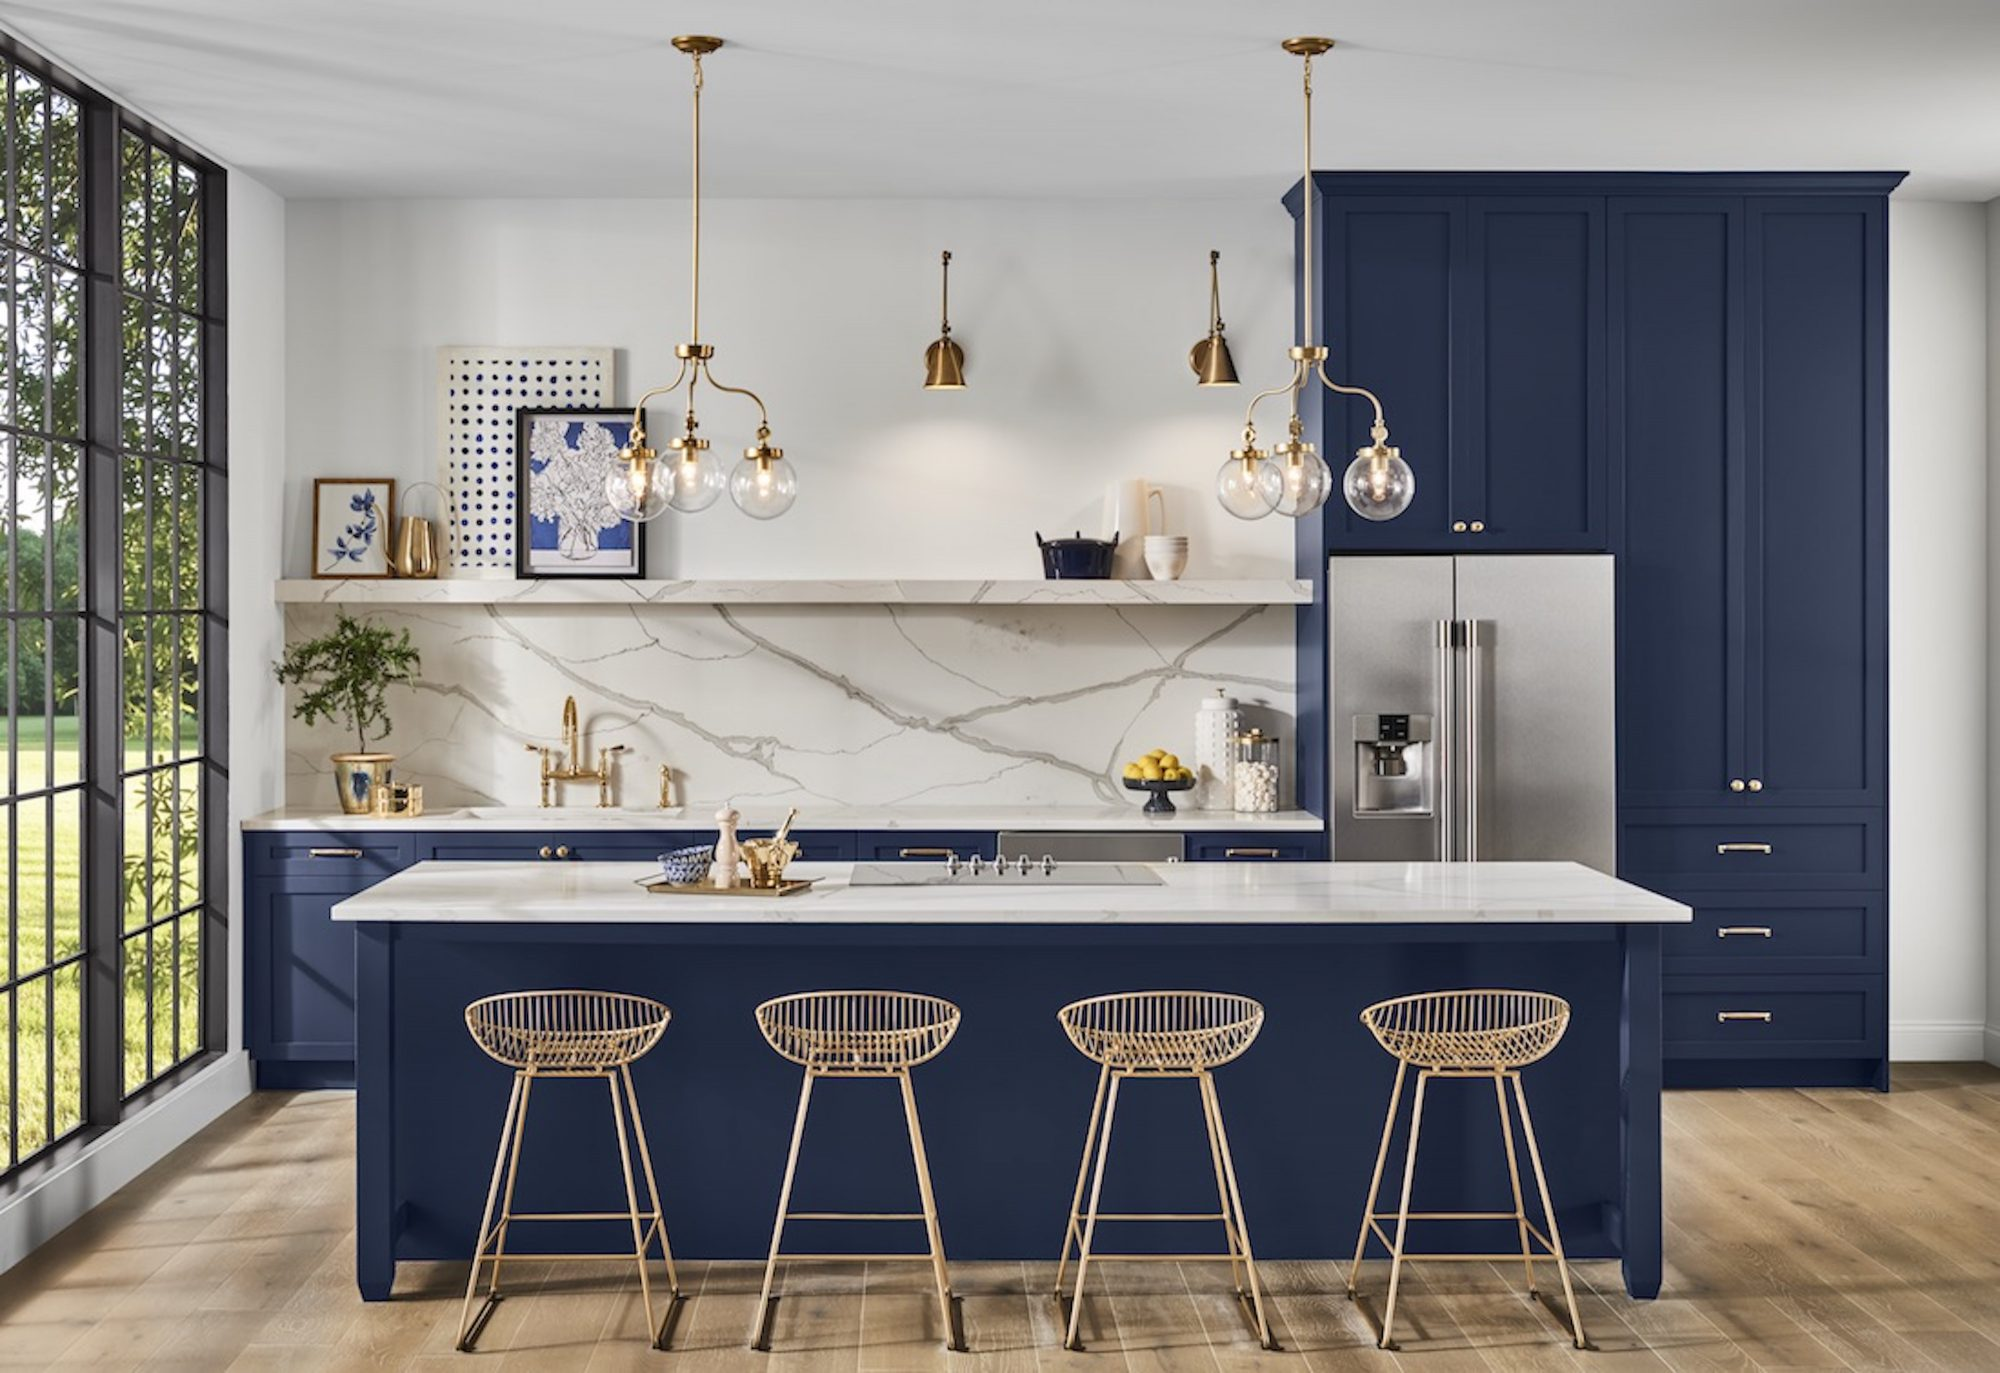 7 Paint Colors We're Loving for Kitchen Cabinets in 2020